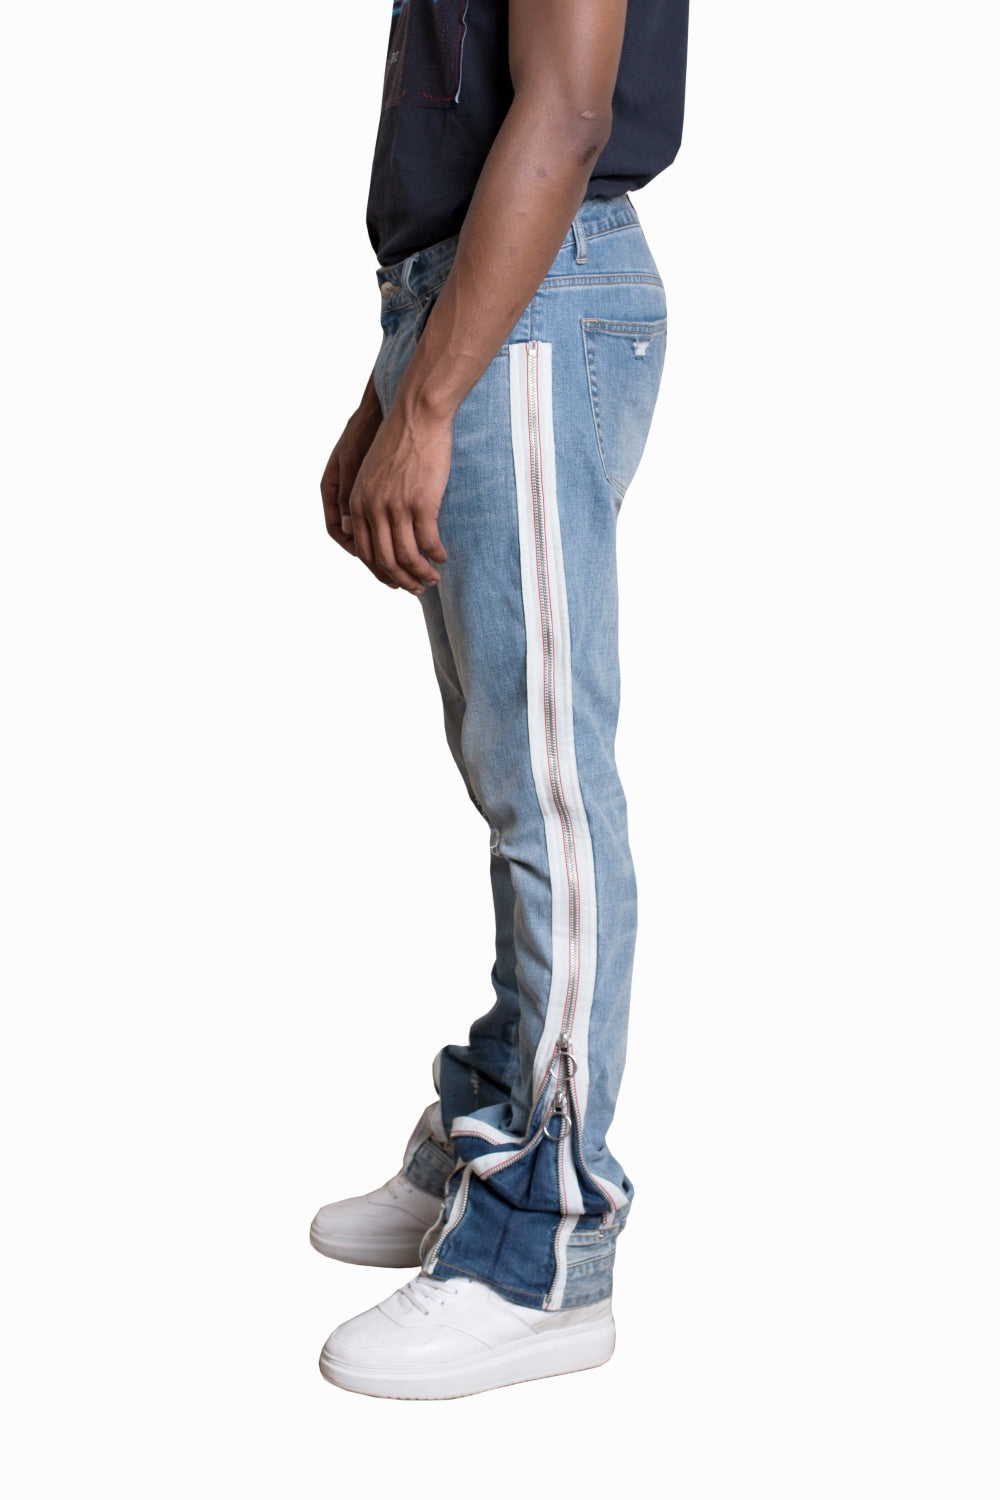 V2 Zippered Jeans